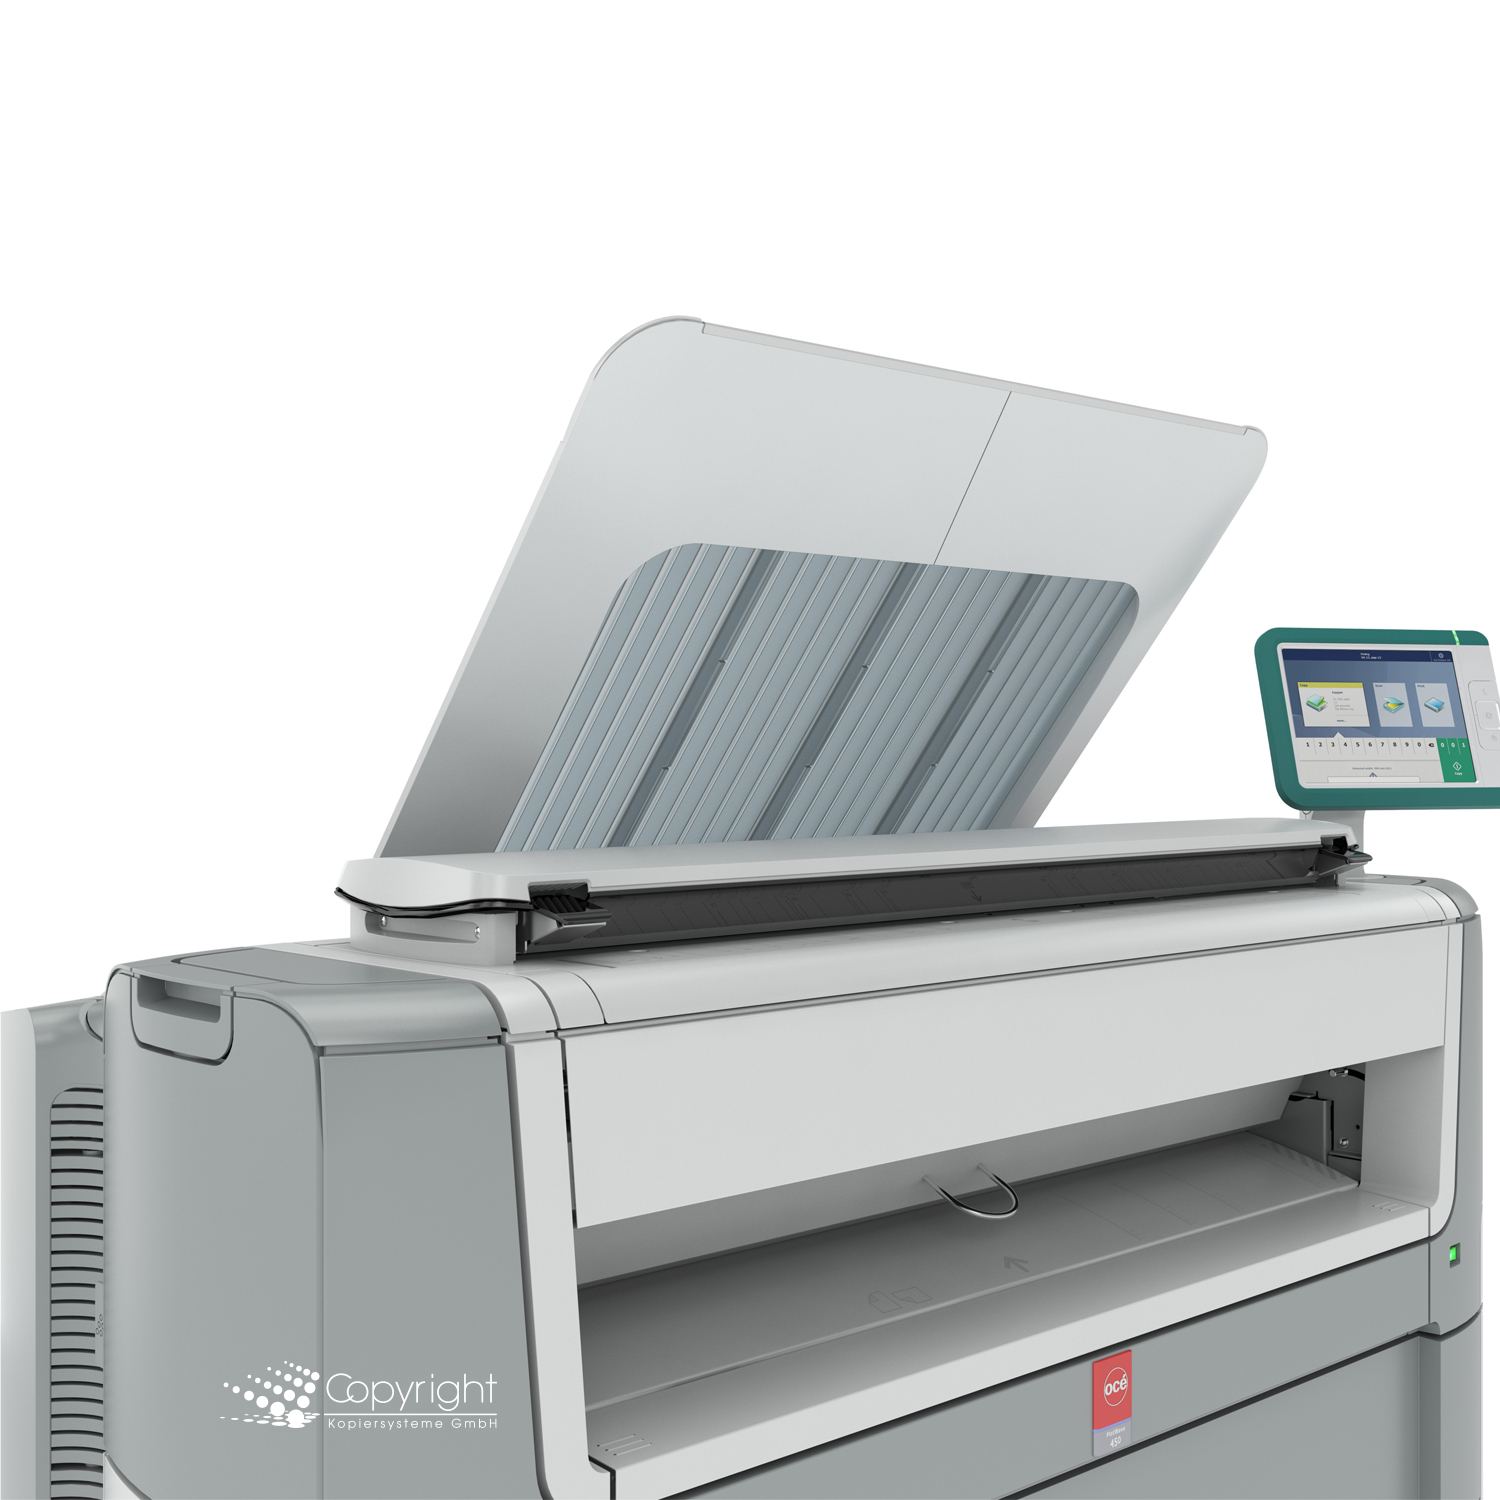 Plotwave 450 MFP